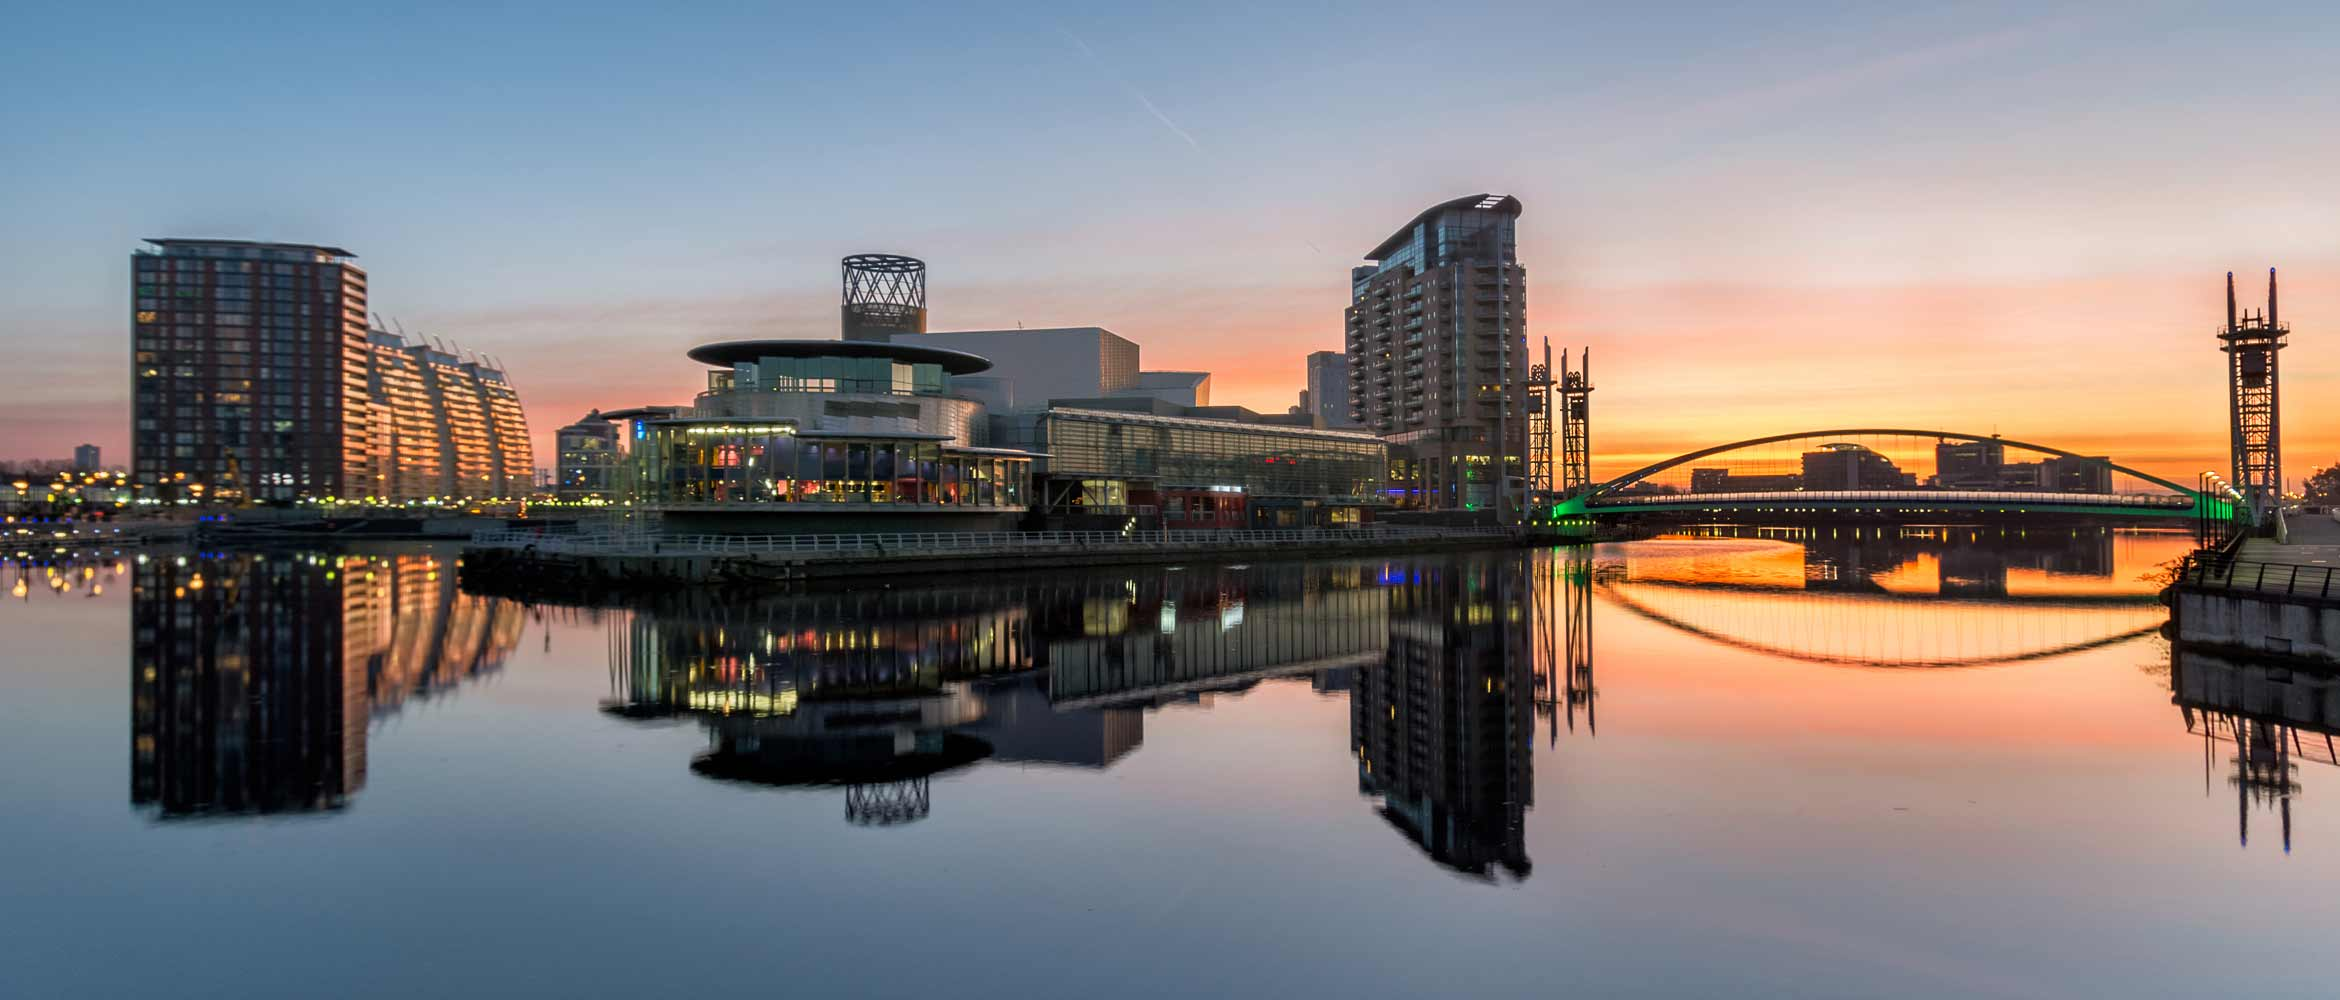 Sunrise at Salford Quays with reflections